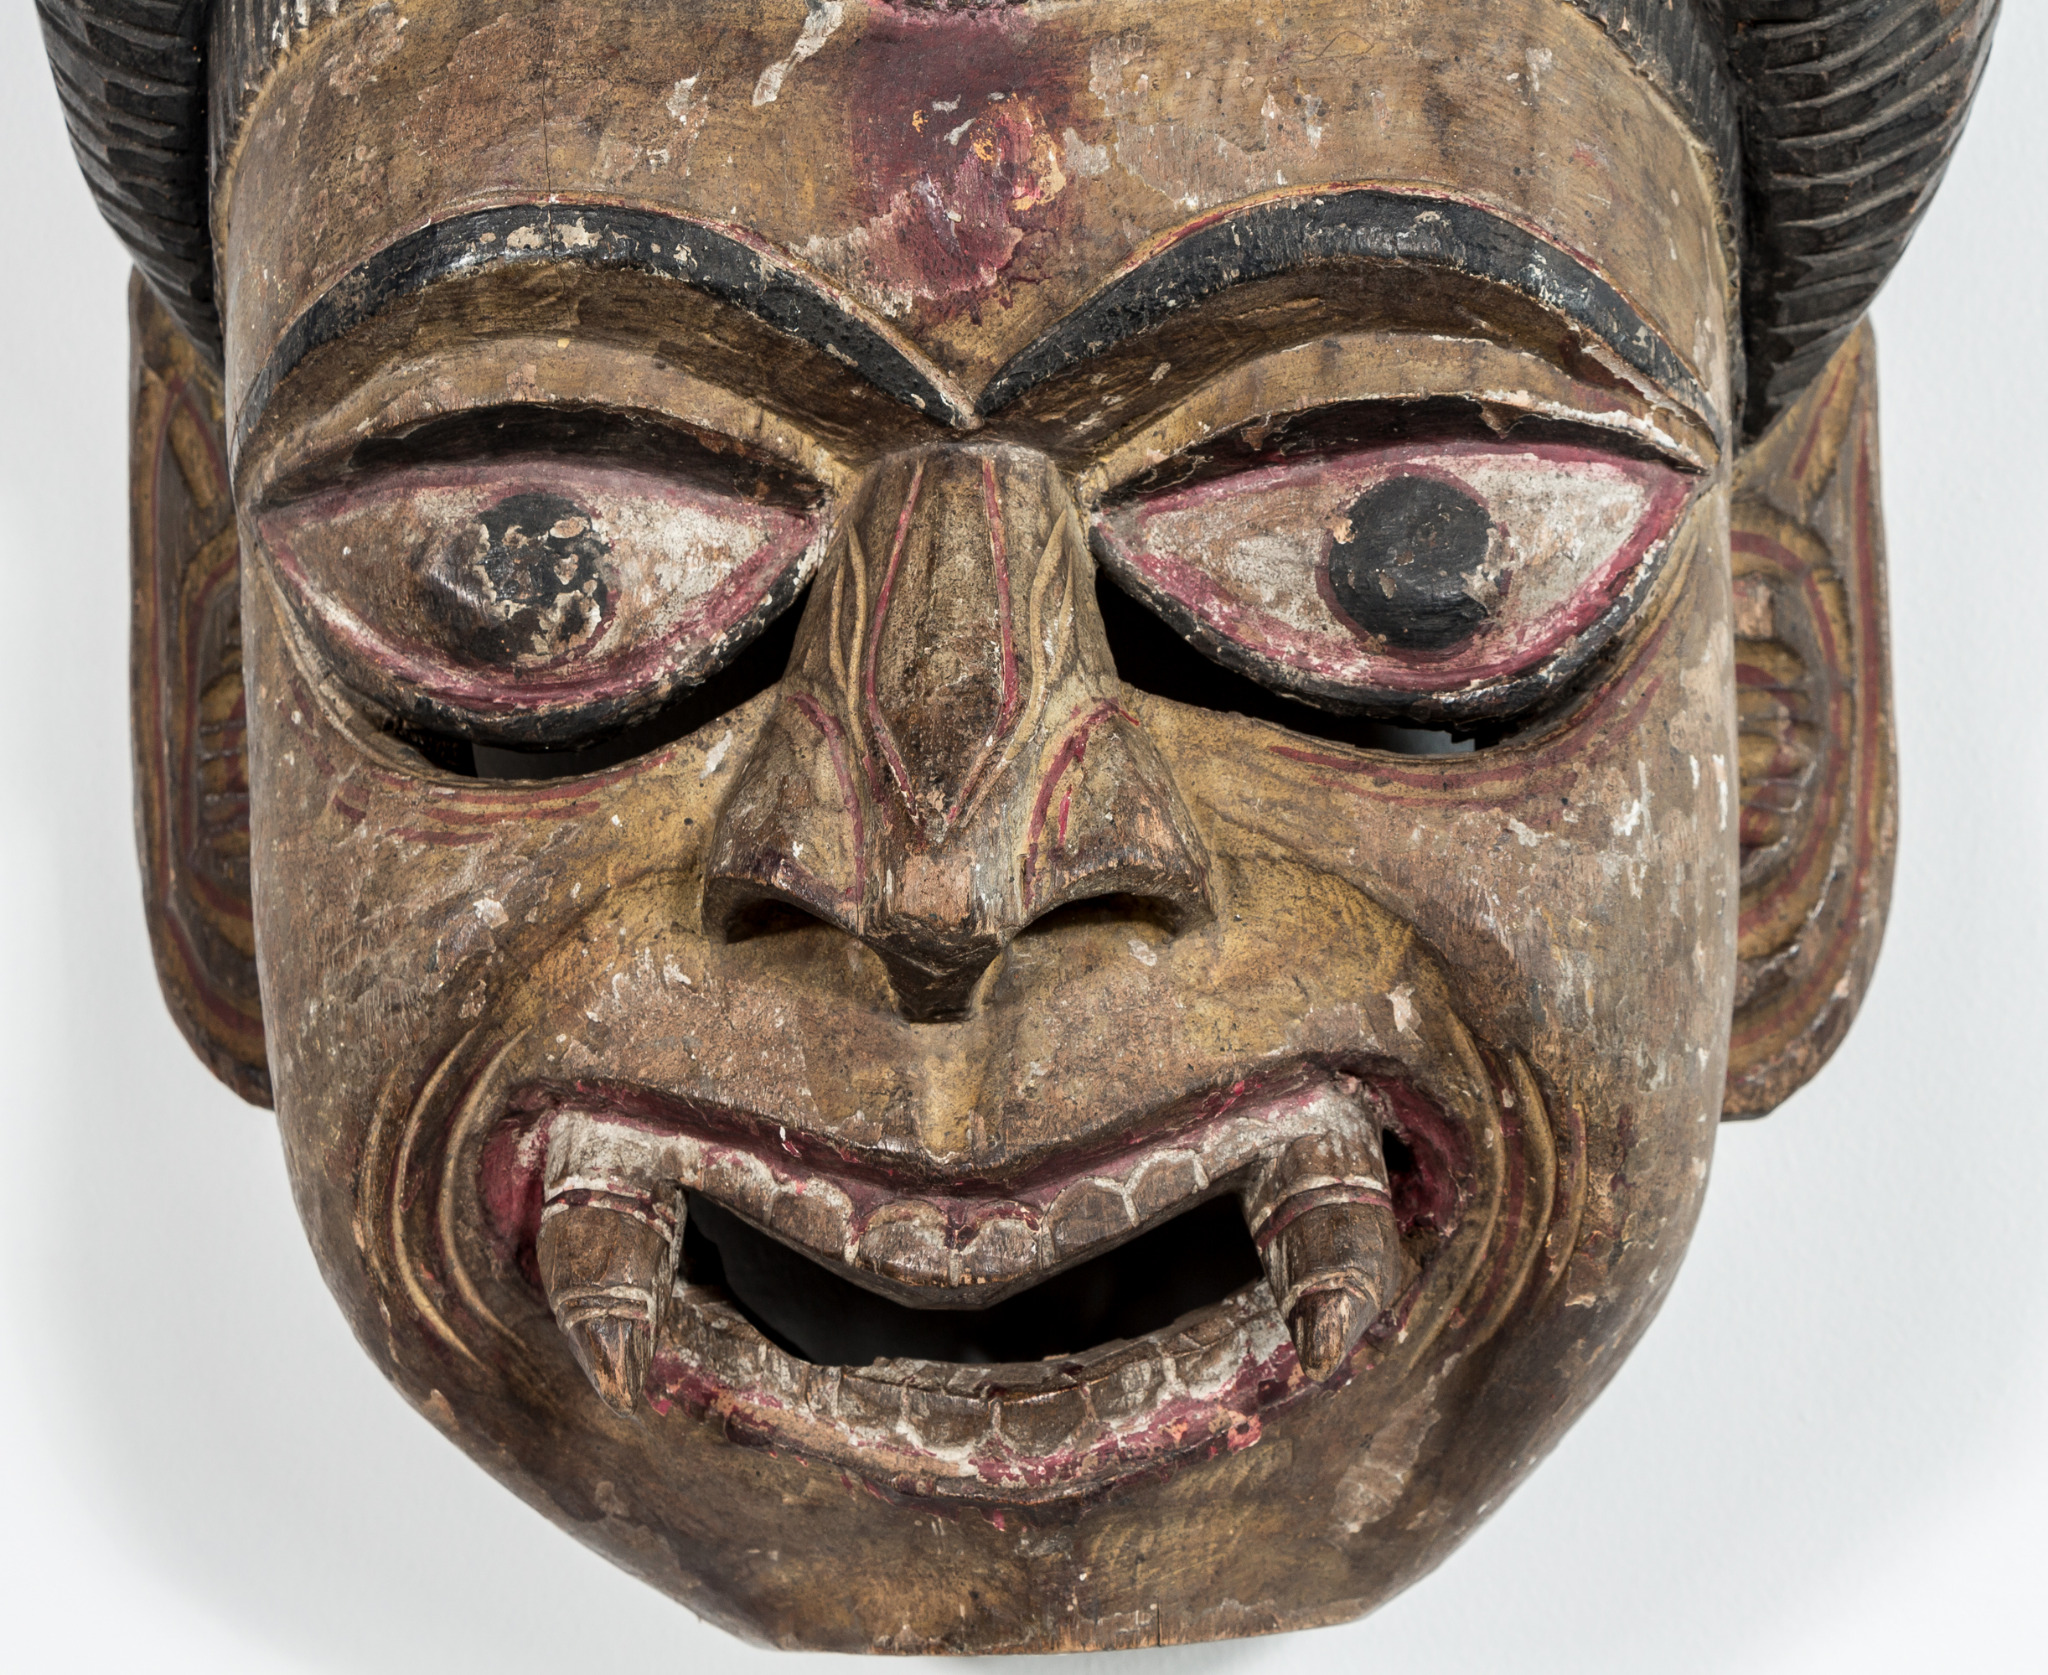 TEMPLE MASK